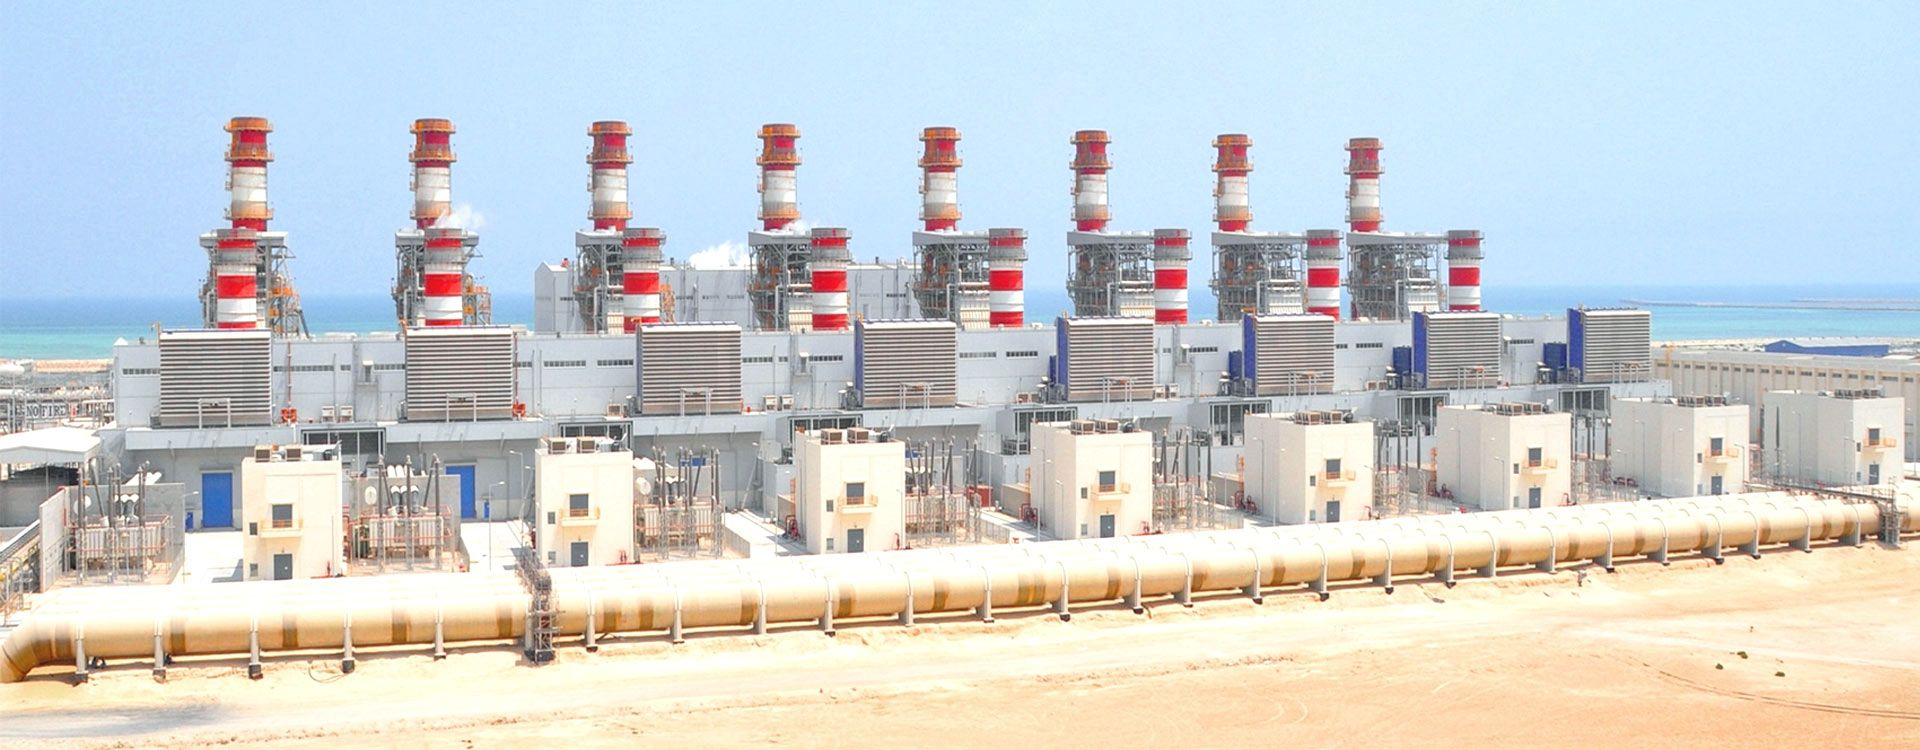 Ras Laffan C Independent Water and Power Plant (IWPP), Qatar